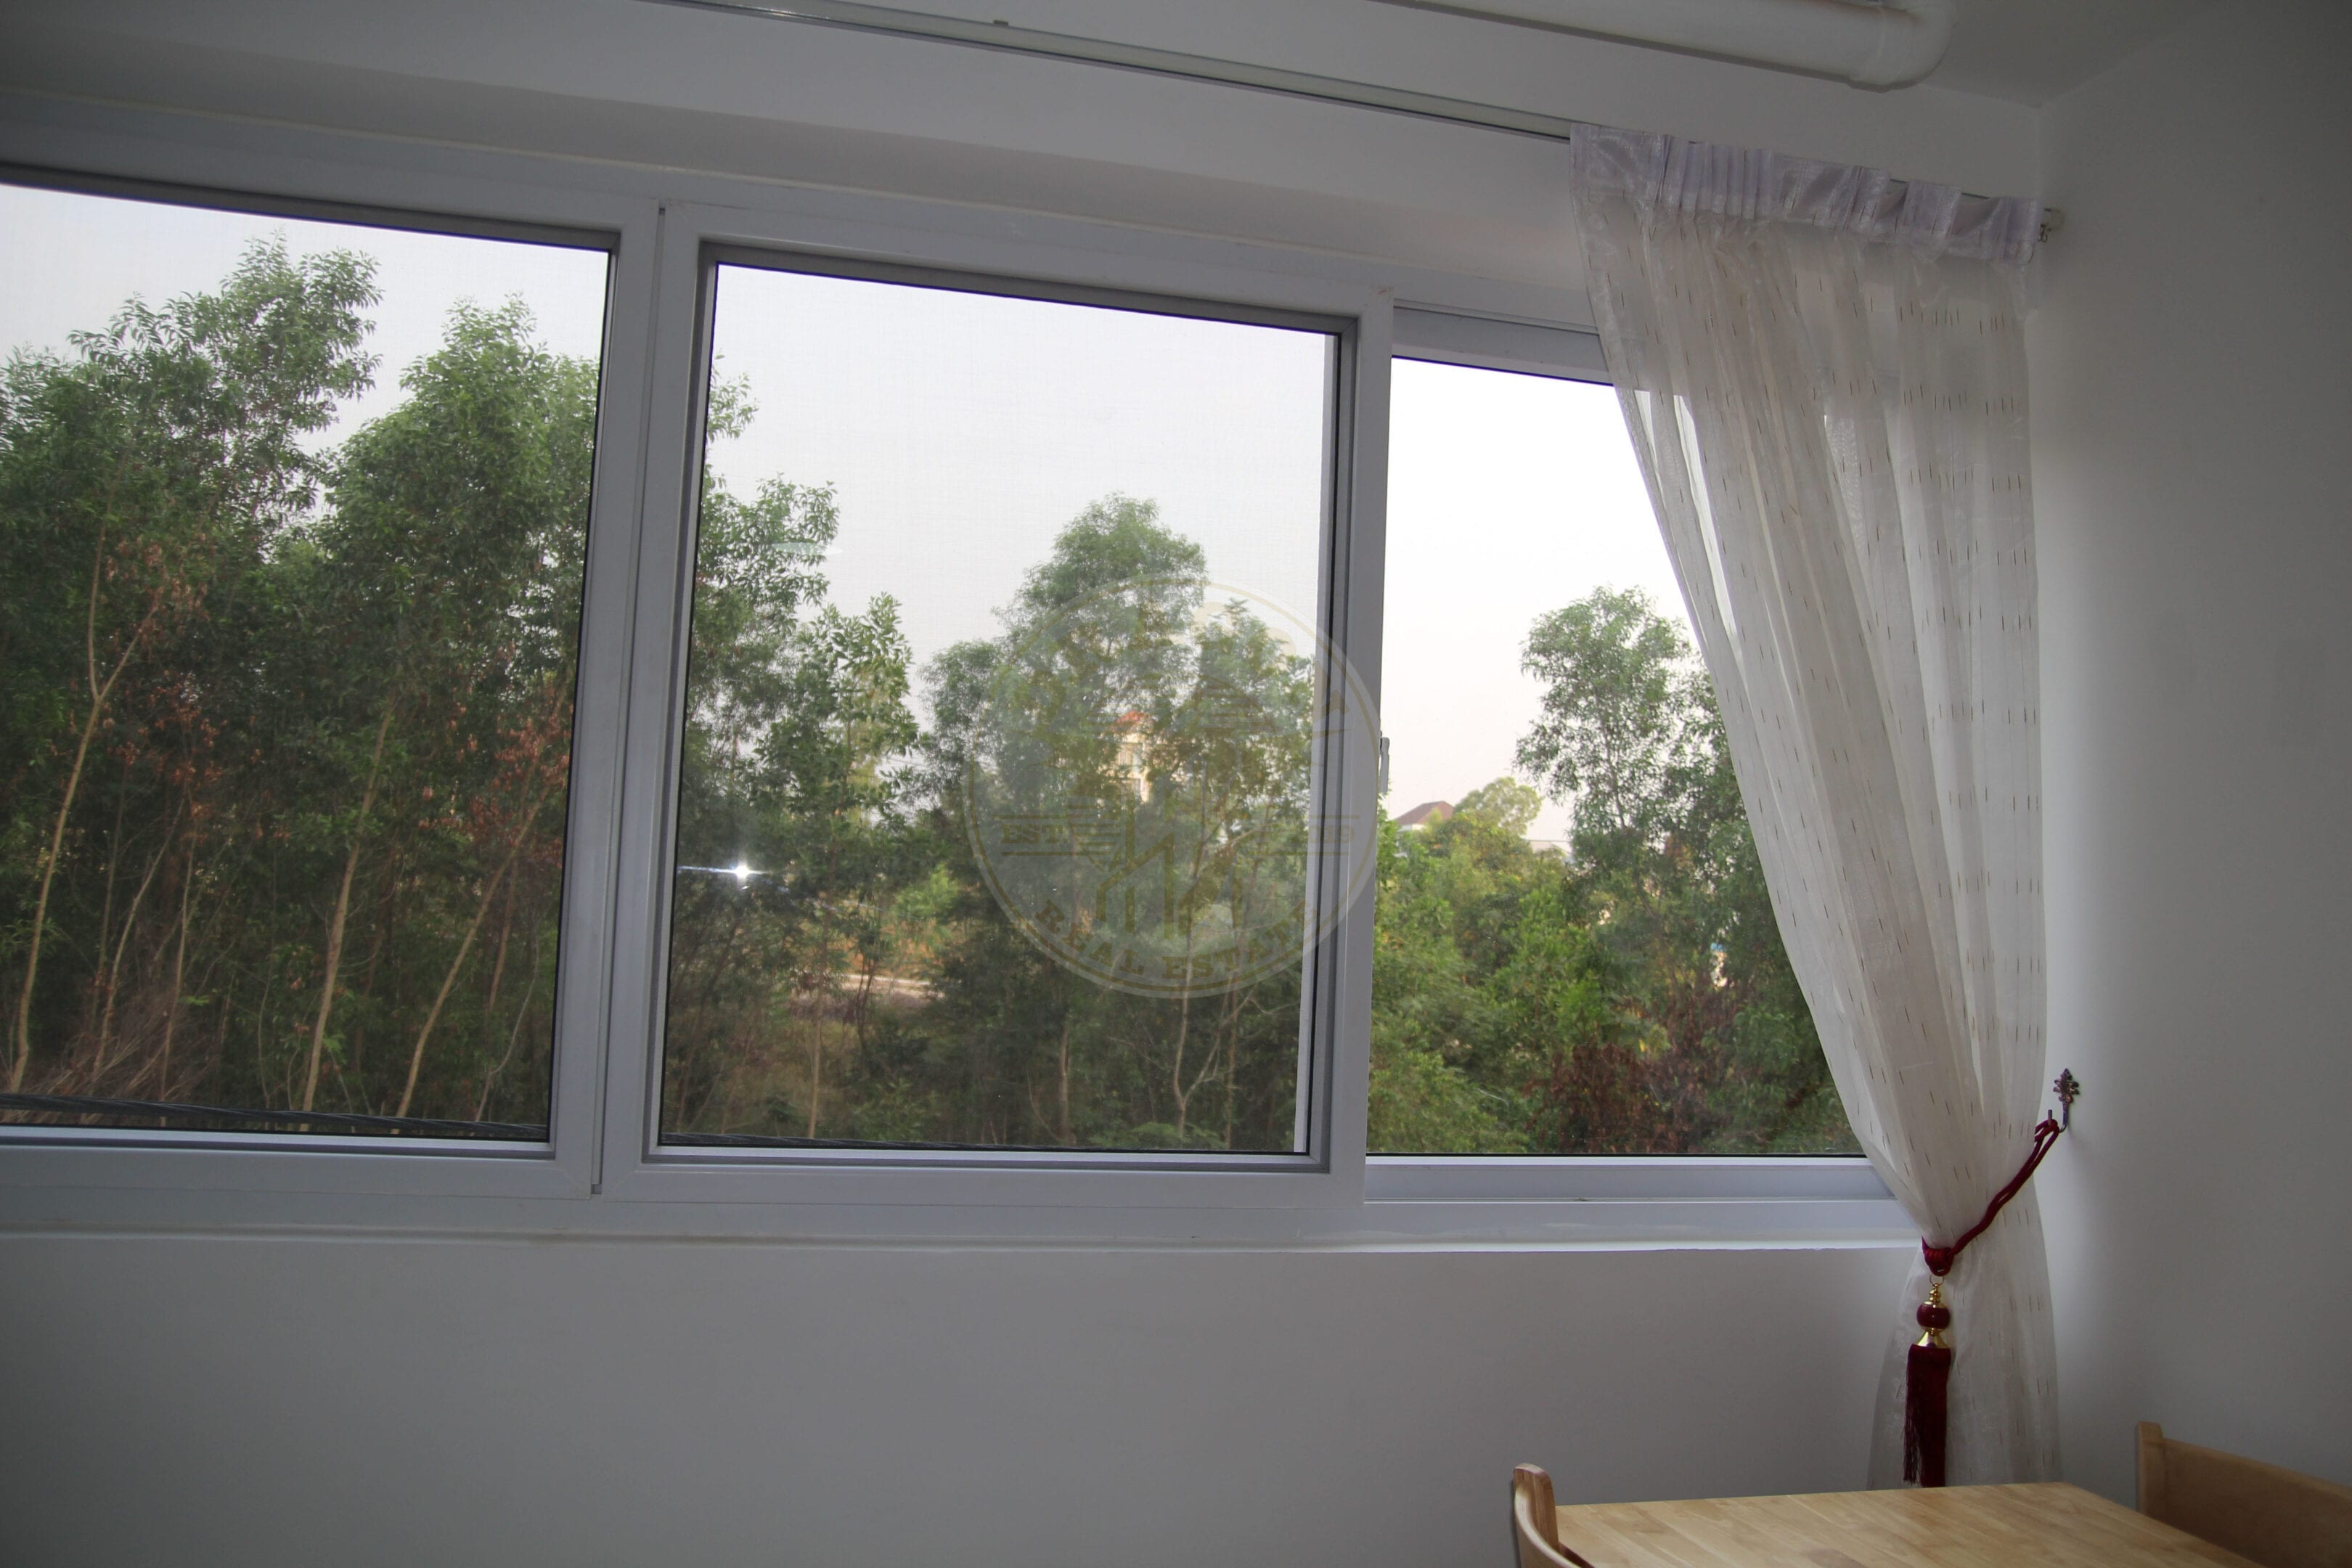 Remarkable Value. Apartment for Rent. Real Estate in Sihanoukville